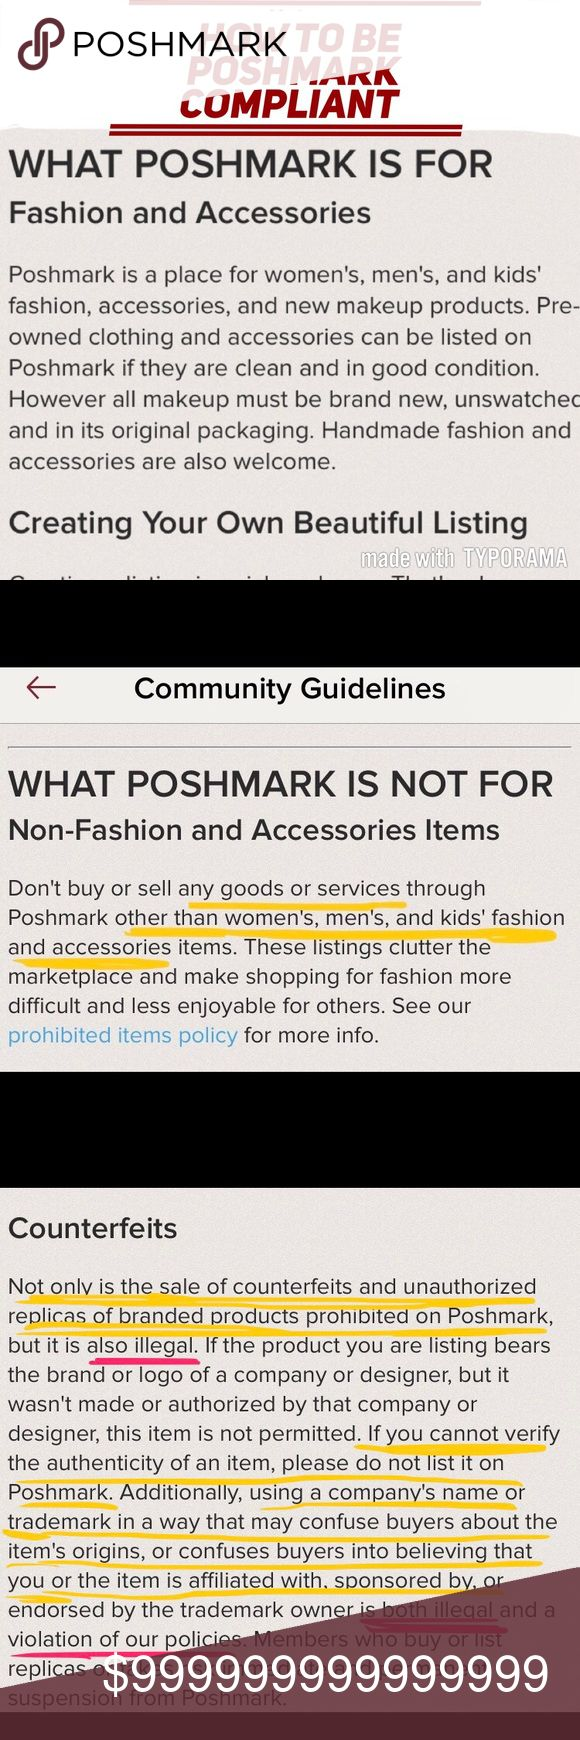 🌷WHAT DOES IT MEAN TO BE POSHMARK COMPLIANT???🌷 ⭐️NO counterfeits/fakes/inspired by ⭐️NO used makeup (SWATCHED = USED!) ⭐️NO liquids (lotion, toners, cleaners, shampoo, conditioner, moisturizer, serums, etc) ⭐️NO personal care items (deodorant, shampoo, conditioner, teeth whitening, moisturizers, etc) ⭐️NO electronics (game consoles, toasters, coffee makers, hair dryer/straightener, curling iron, etc) 🚫IF IT DOESN'T ABIDE BY USPS LAWS ITS PROHIBITED 🚫  Feel free to ask questions and/or…